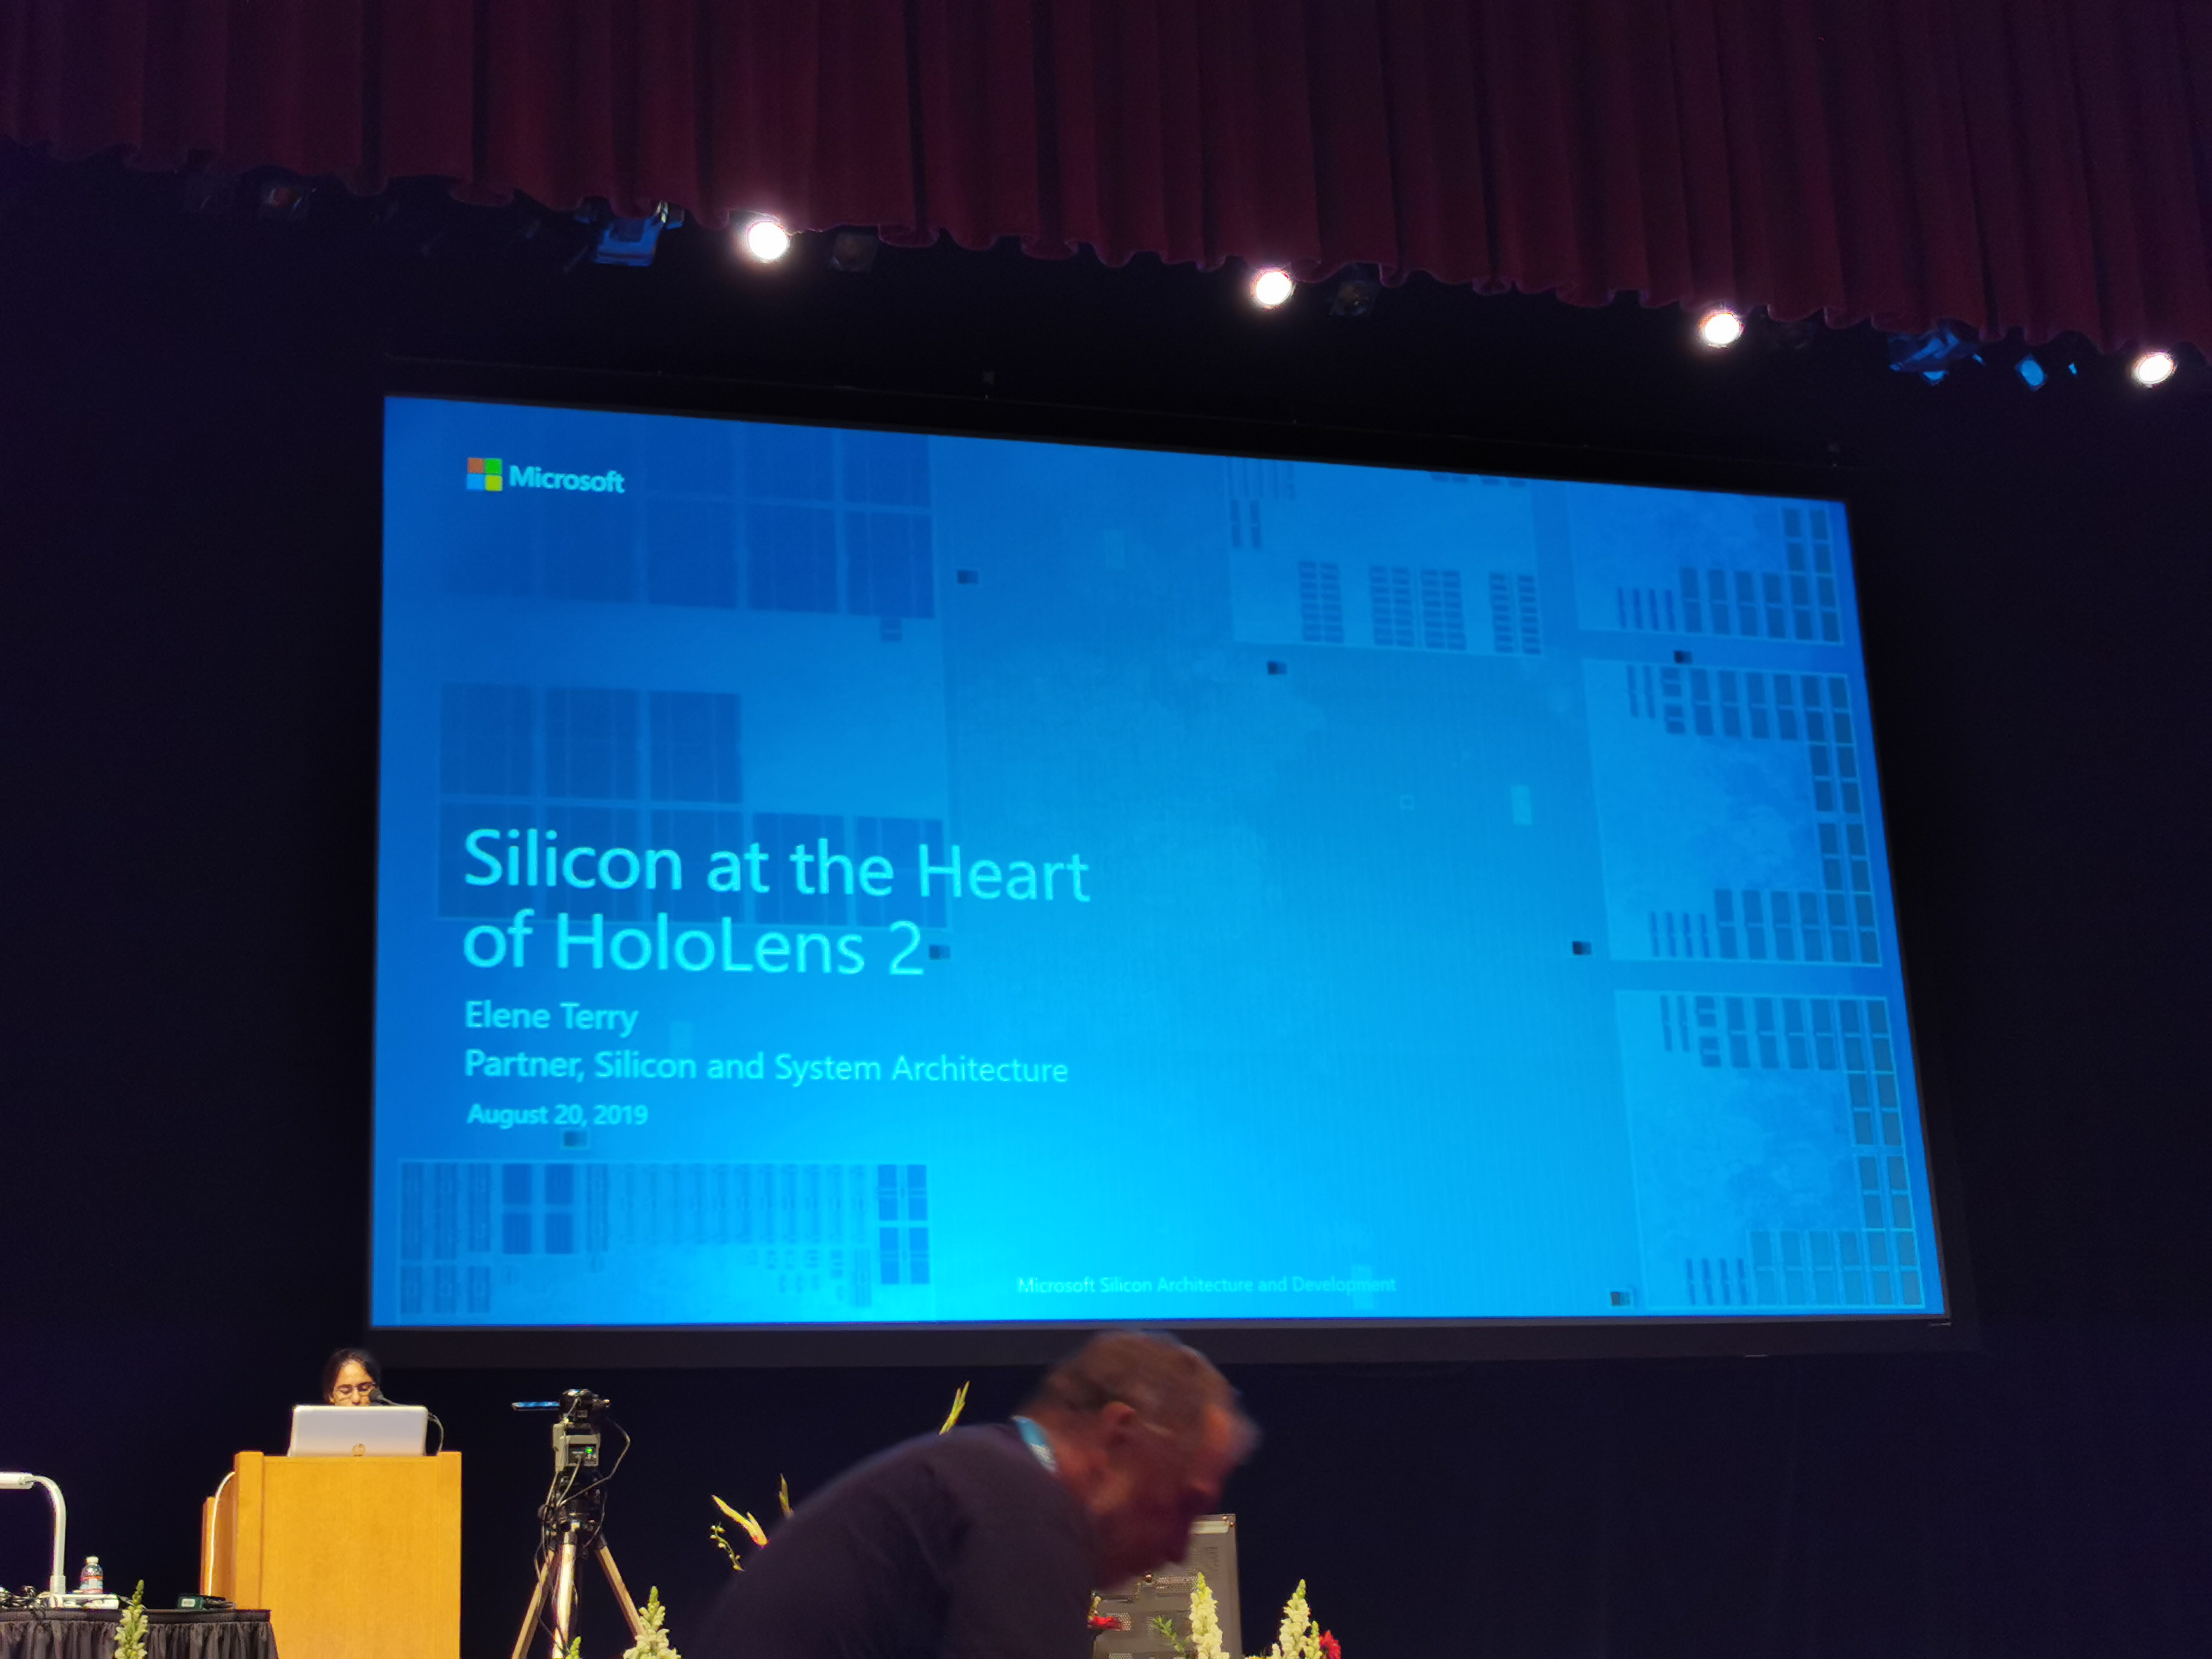 Hot Chips 31 Live Blogs: Microsoft Hololens 2 0 Silicon